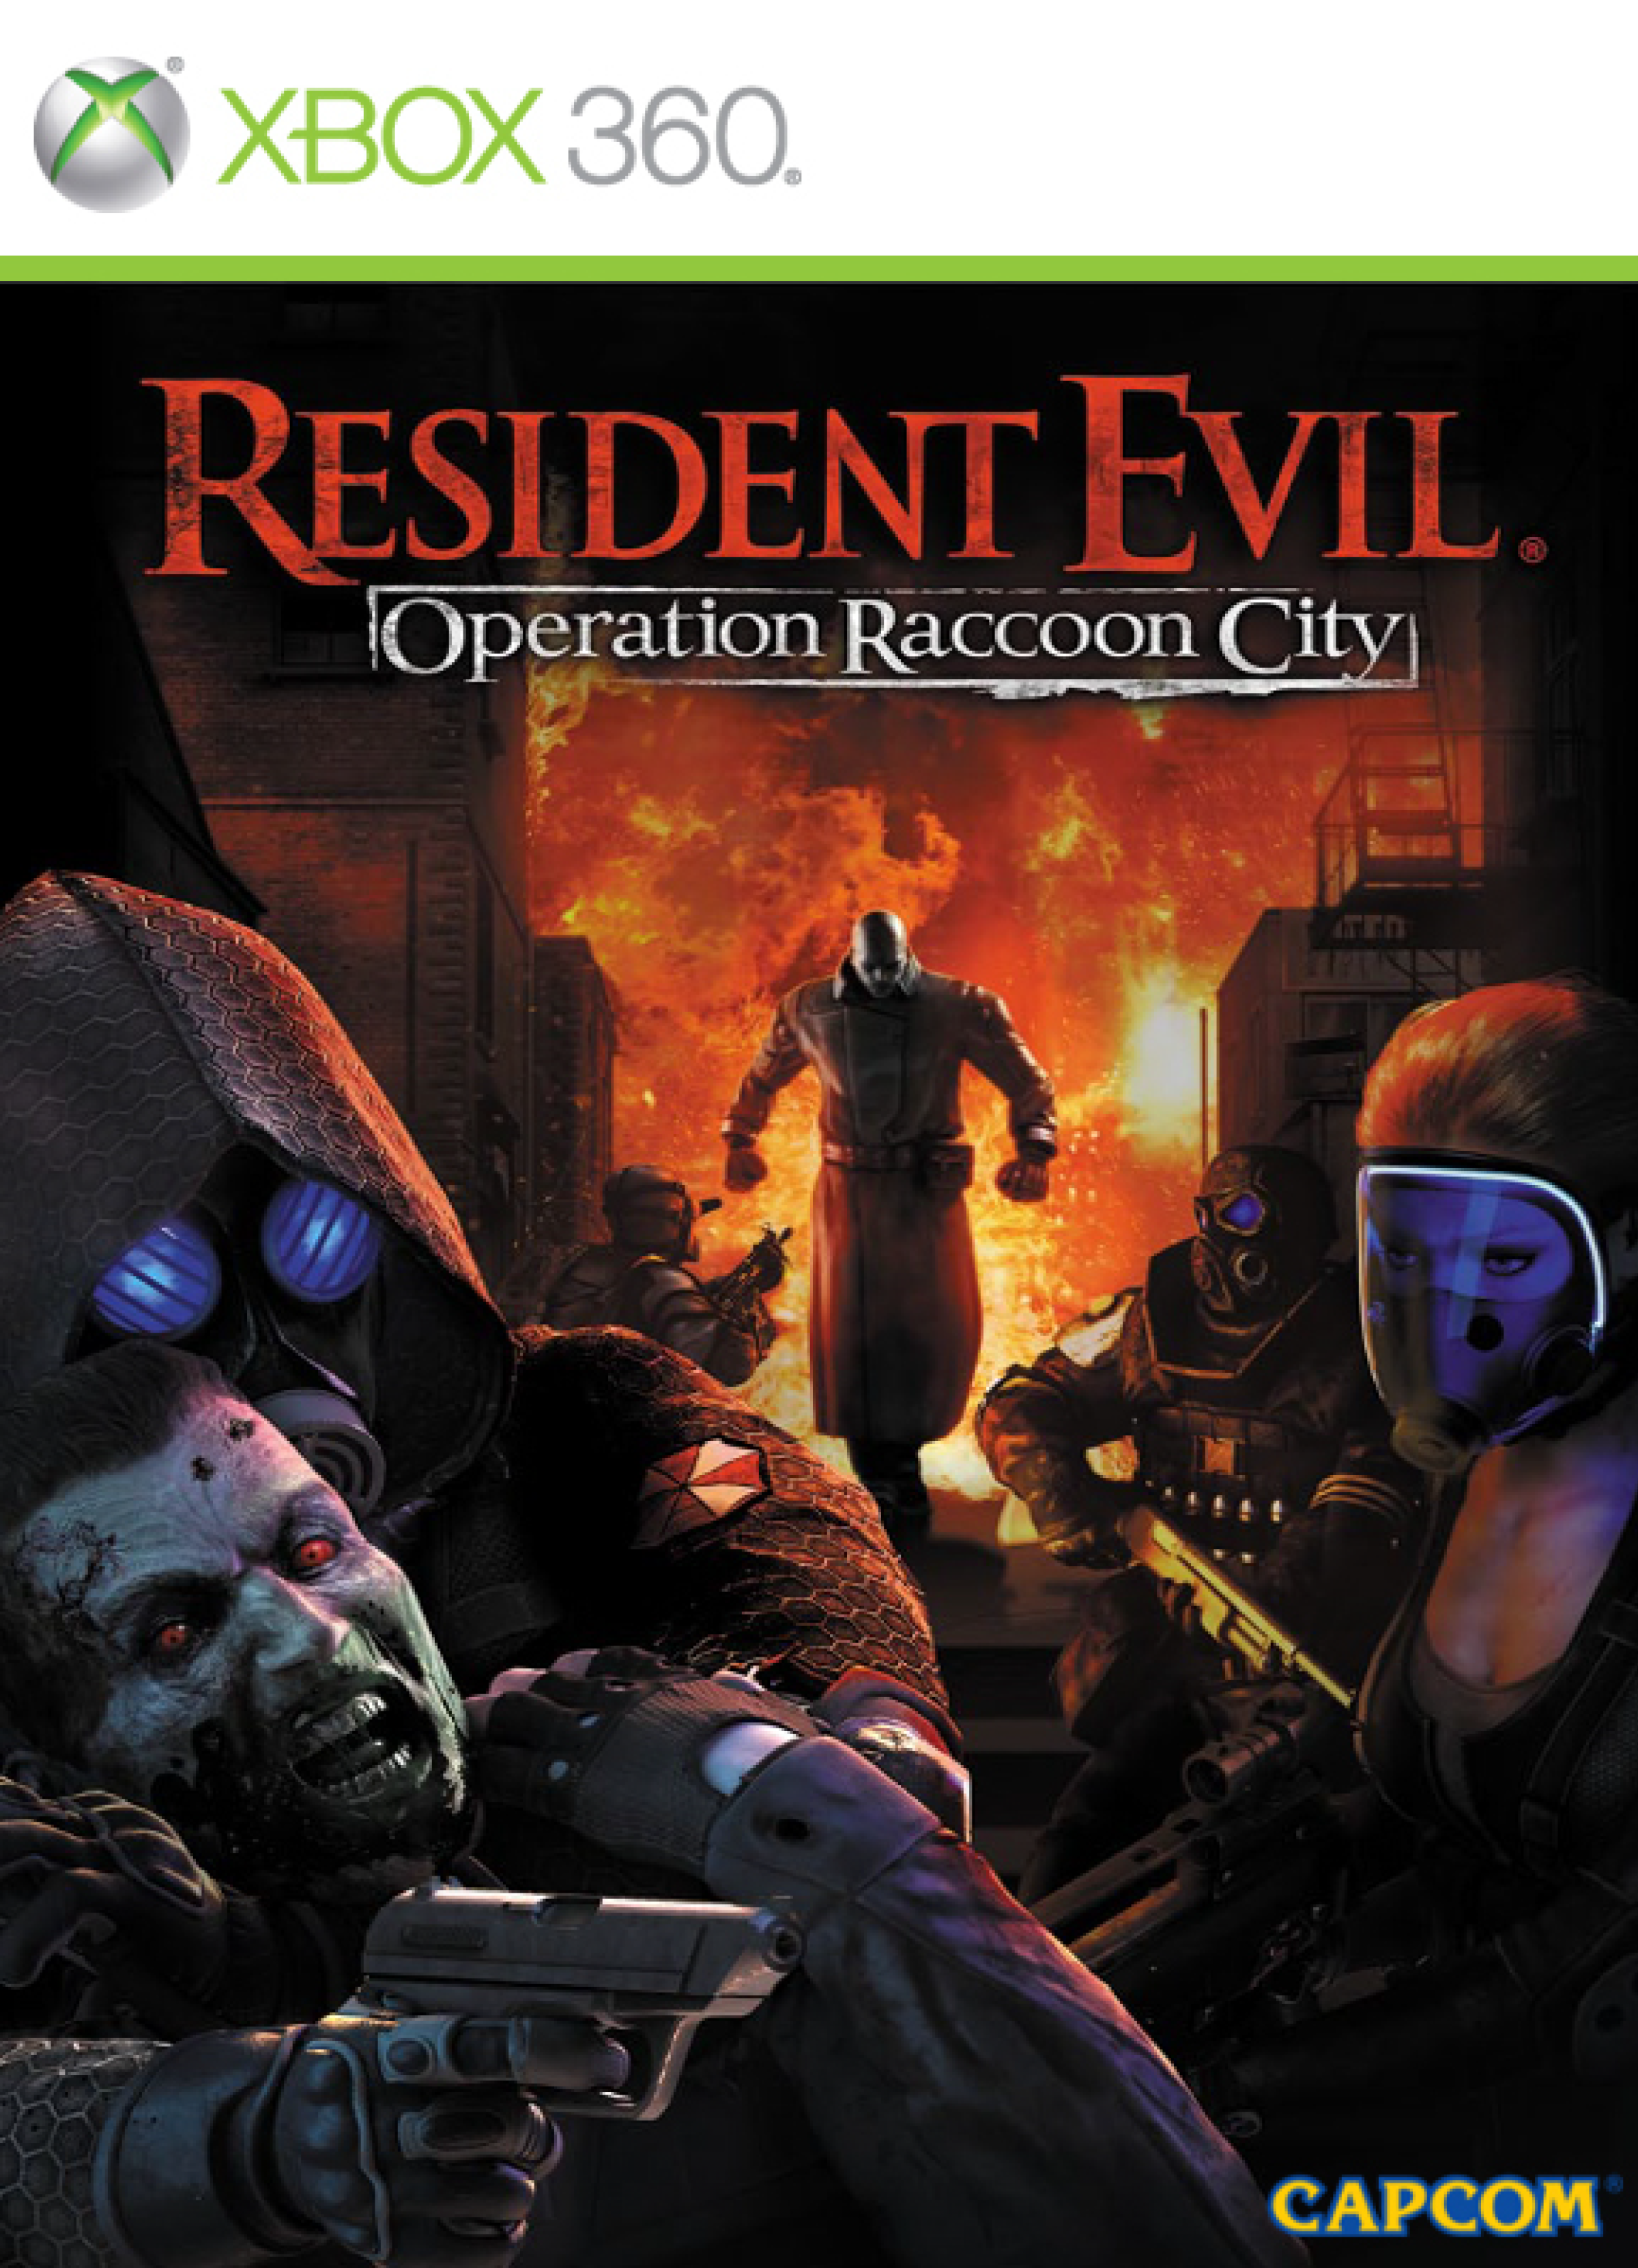 Resident Evil: Operation Raccoon City manual